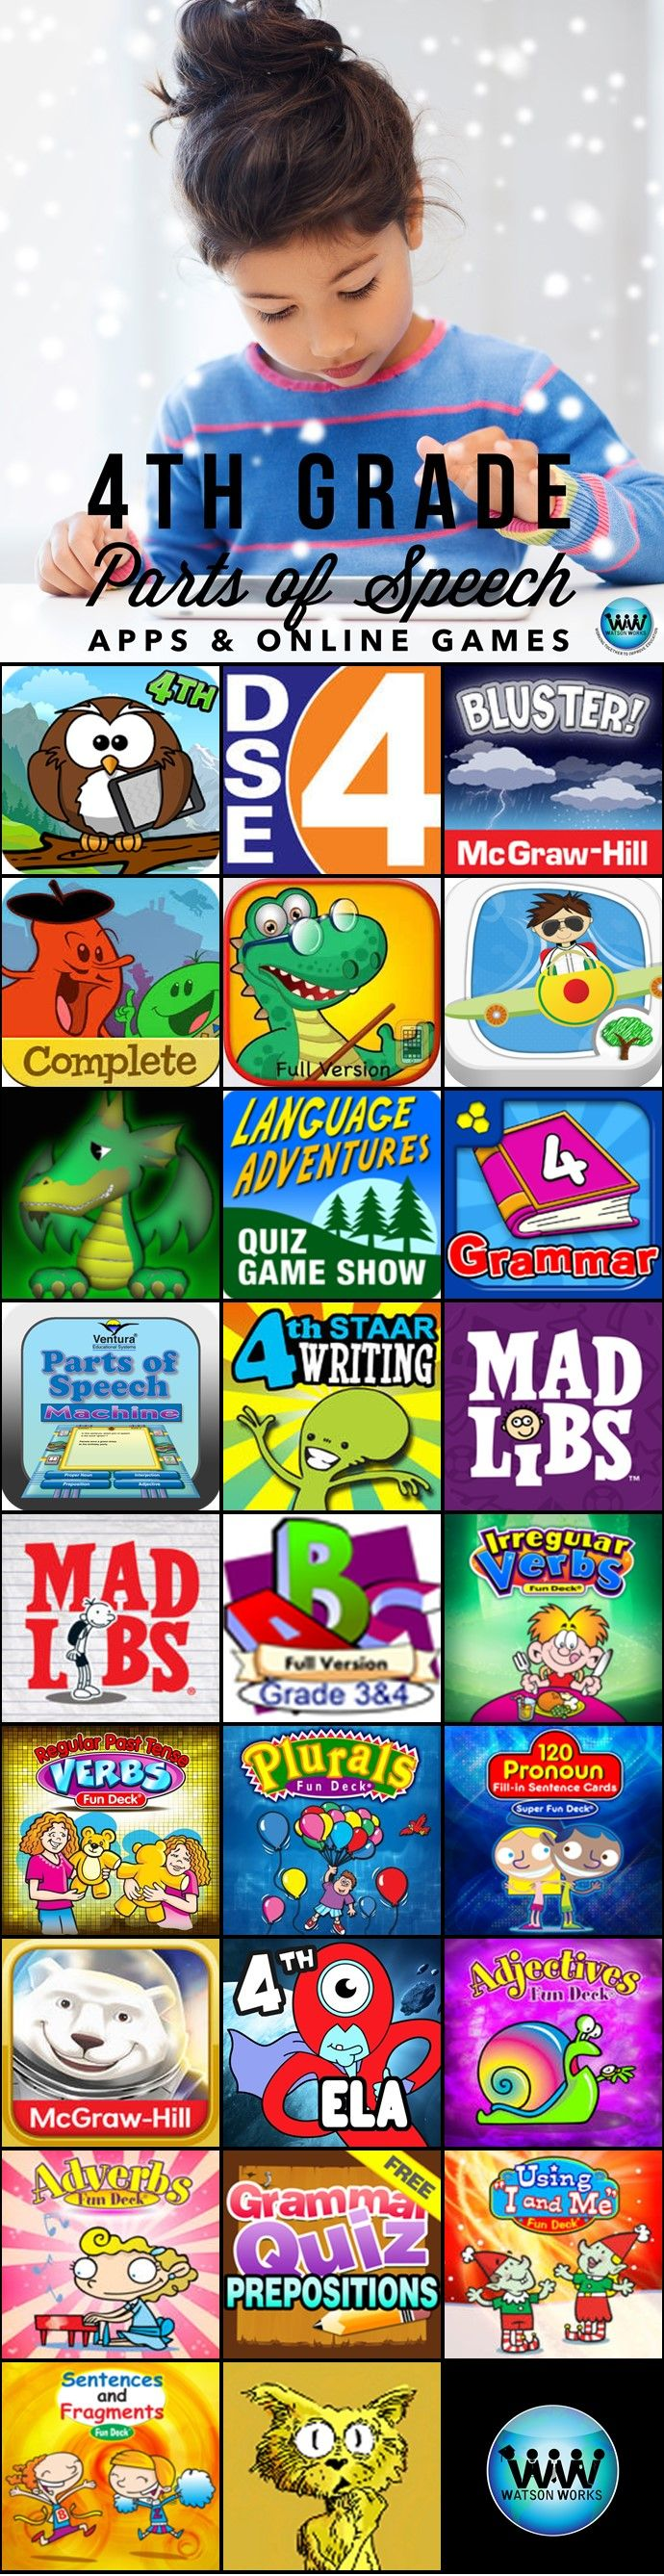 In order to become stronger writers in 4th grade, children must understand the function of the following parts of speech in the context of reading, writing, and speaking: verbs, nouns, adjectives, adverbs, prepositions, pronouns, conjunctions, and time-order transition words. Here are some apps, online games, and other resources you can use to practice and review these important grammar skills learned in 4th grade. #edtech #ipads #ipadapps #writing #partsofspeech #grammar #iteachfourth